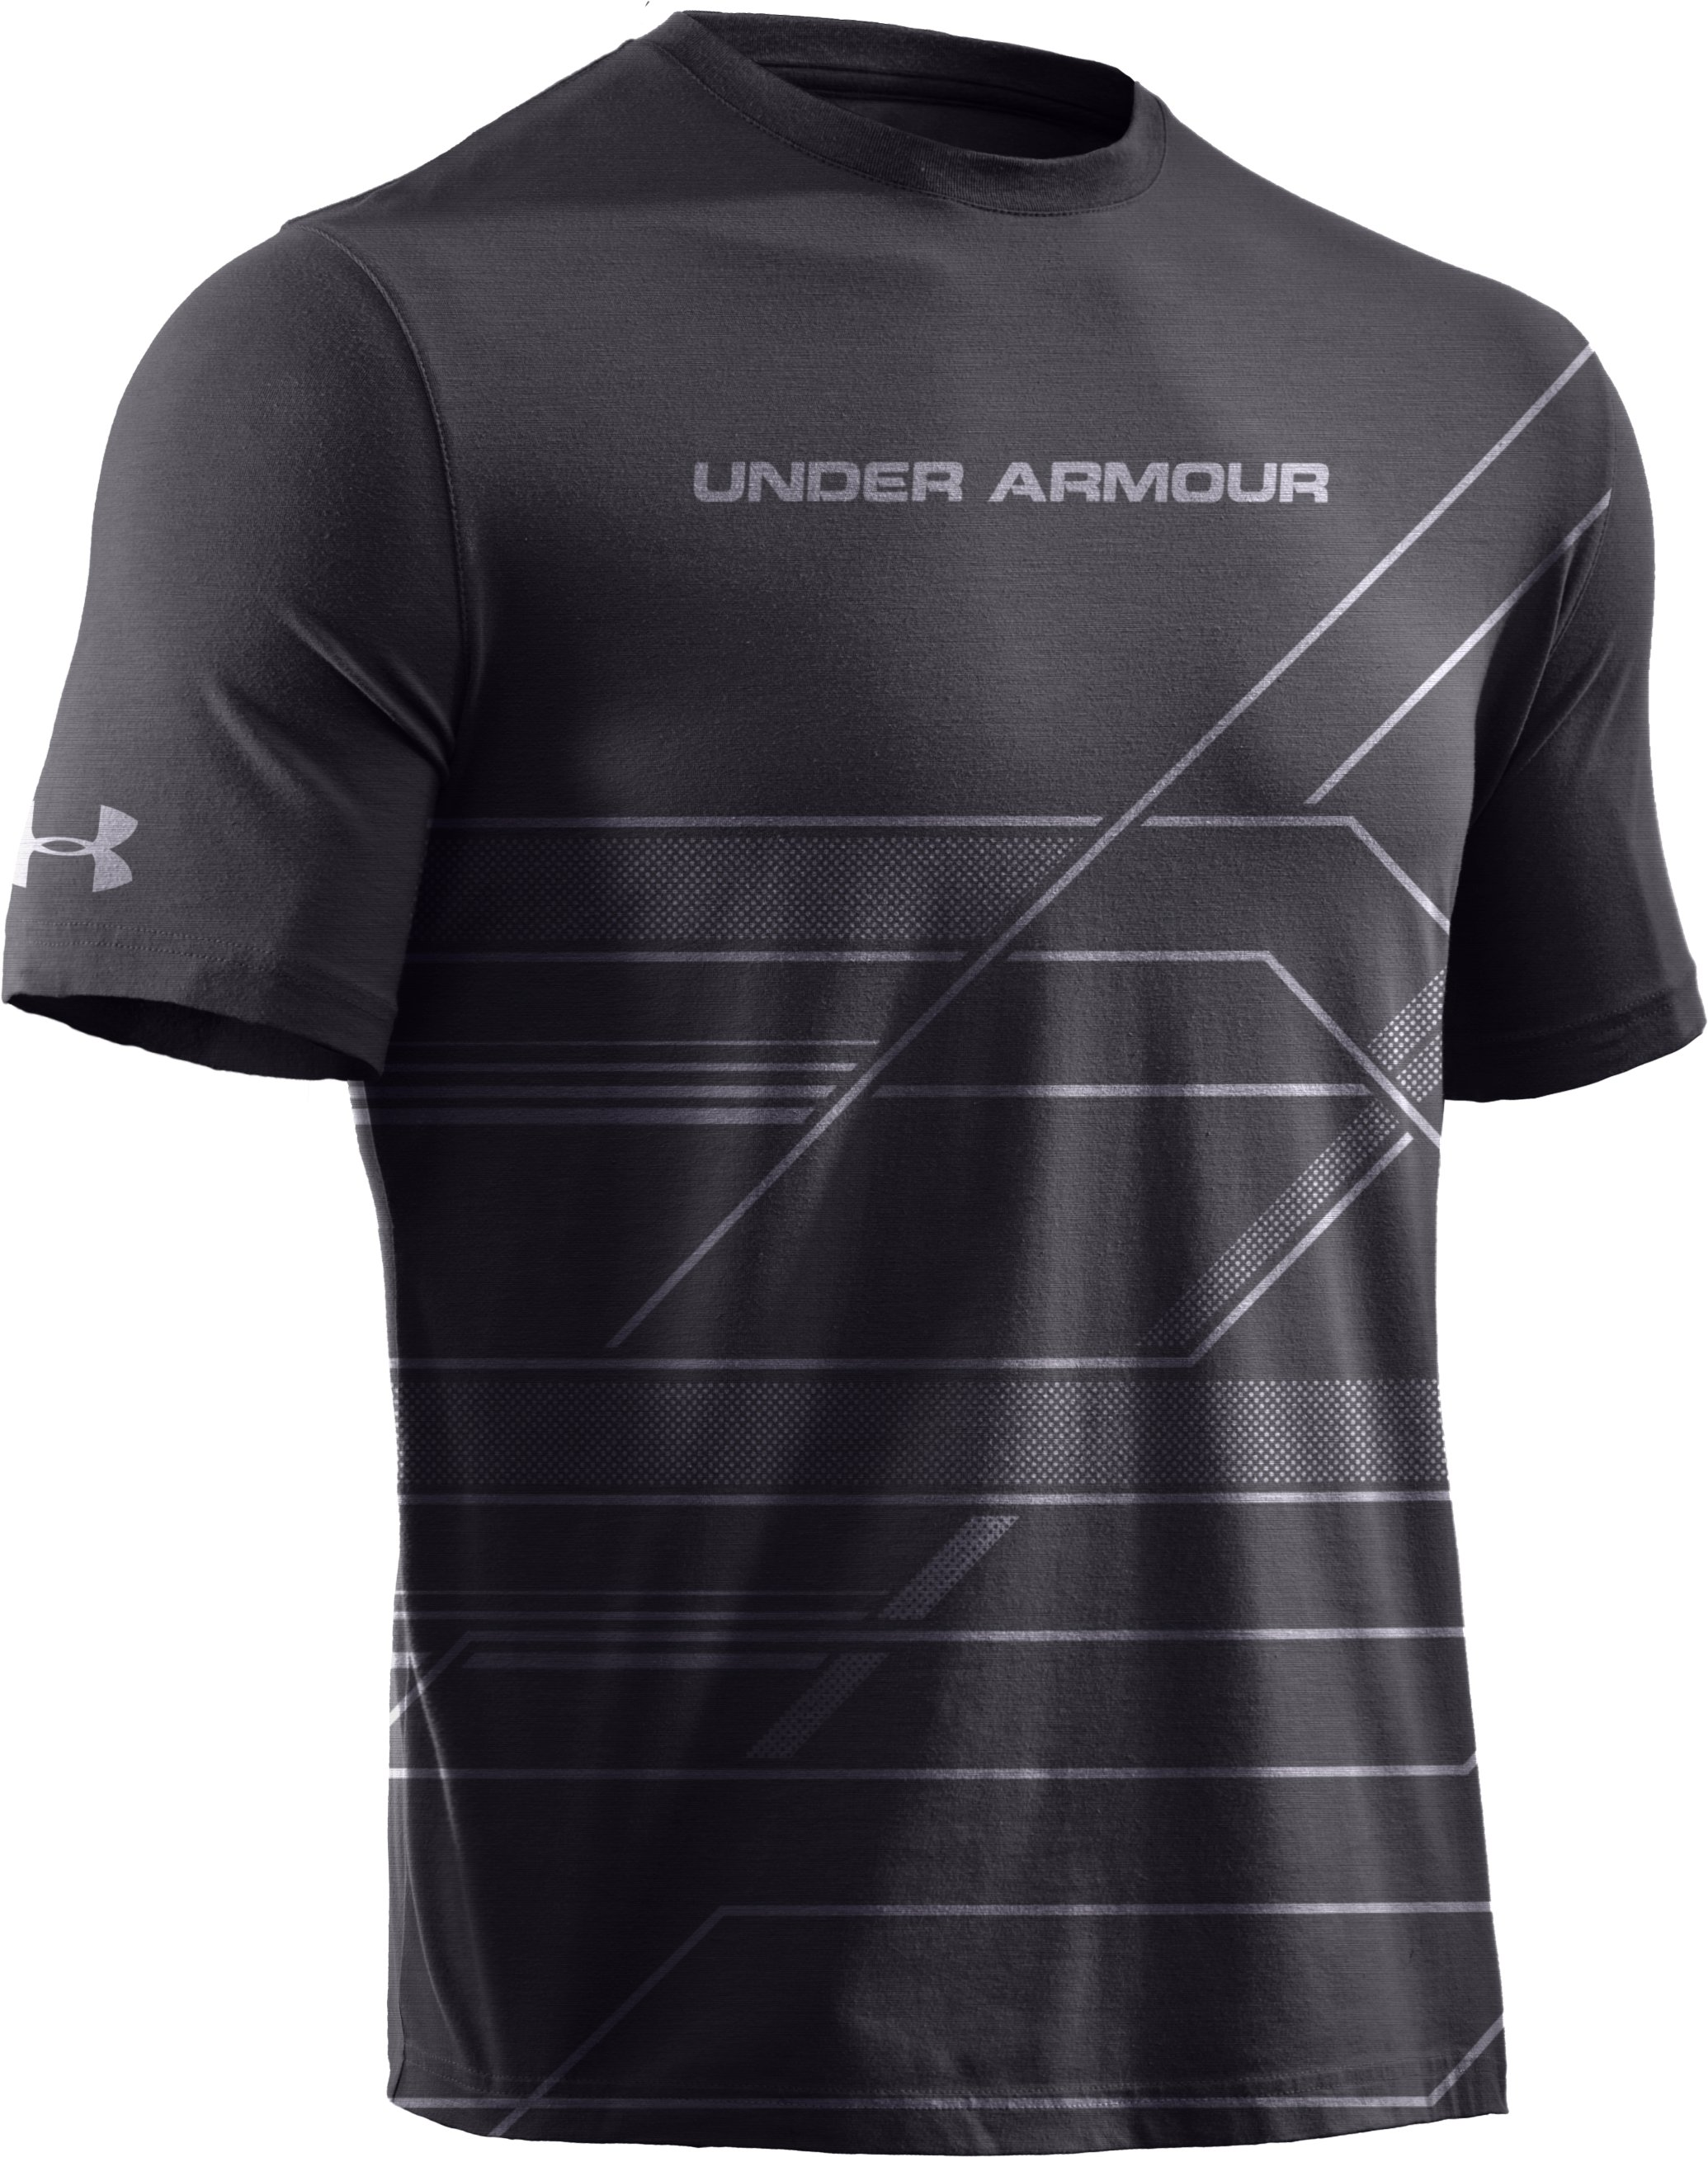 Boys' UA Domineer T-Shirt, Charcoal, zoomed image